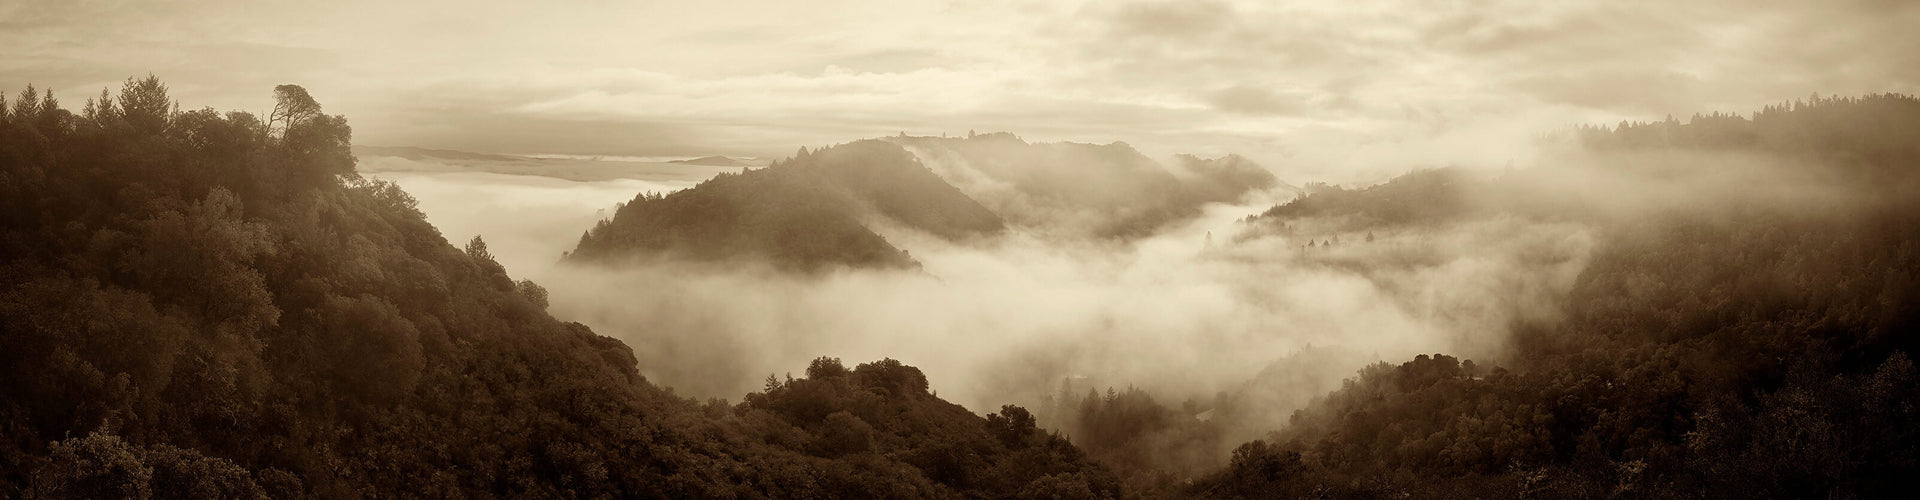 Fog covered Promontory Vineyards in Napa Valley